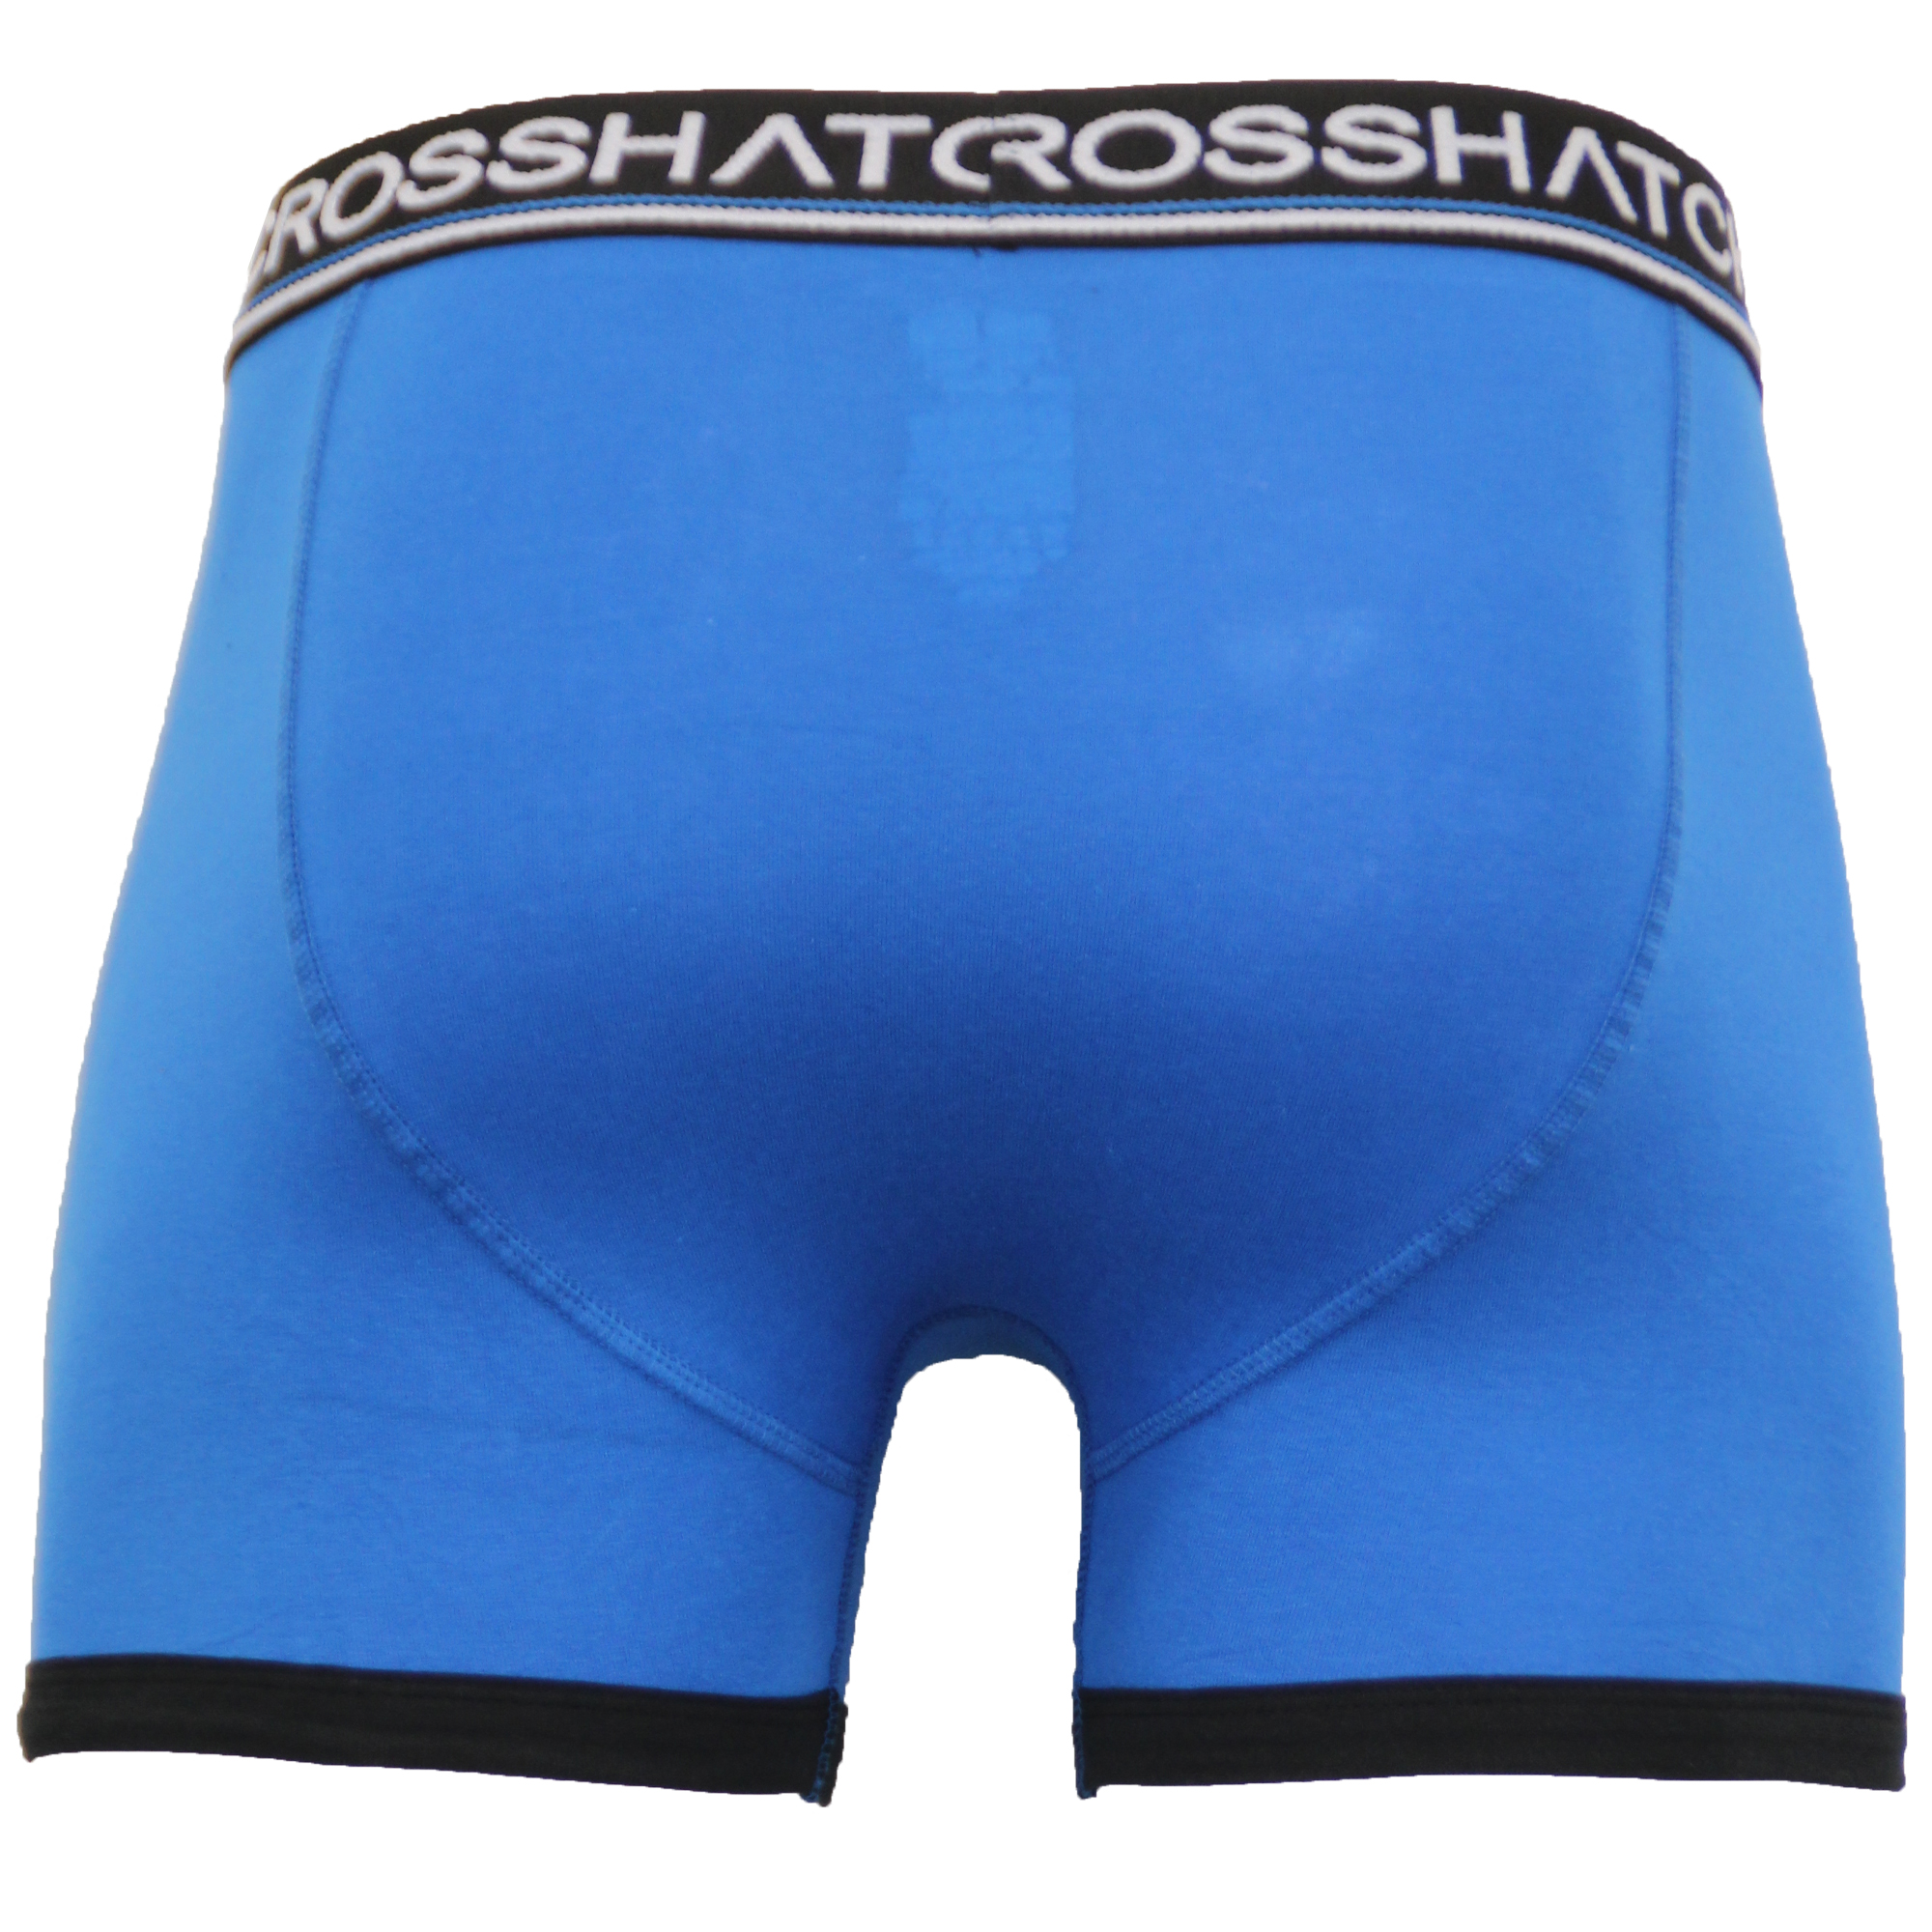 thumbnail 3 - Mens Boxer Crosshatch TWO 2 Pack Underwear Trunks Shorts Plain Check Casual New